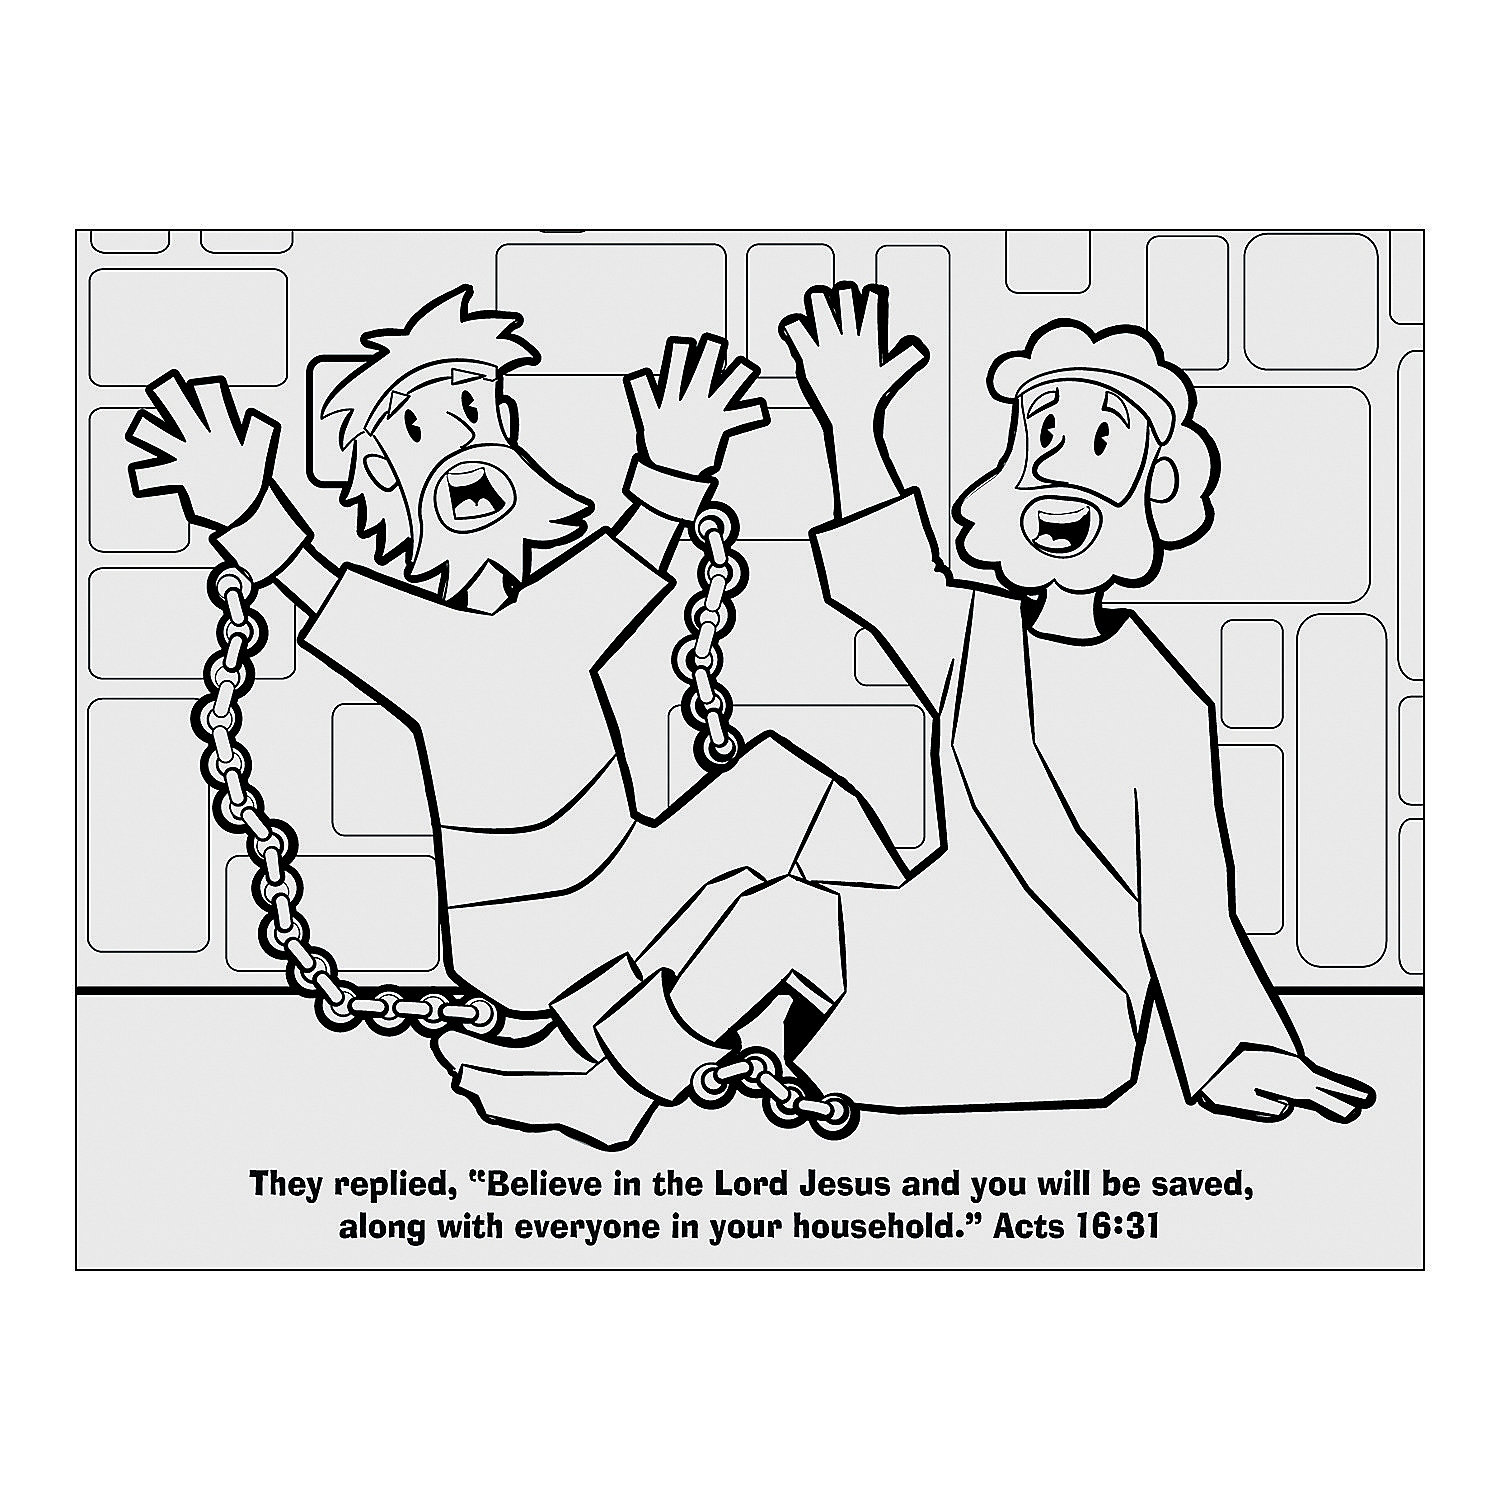 paul and silas in prison coloring page - paul silas fold up activity sheets oriental trading